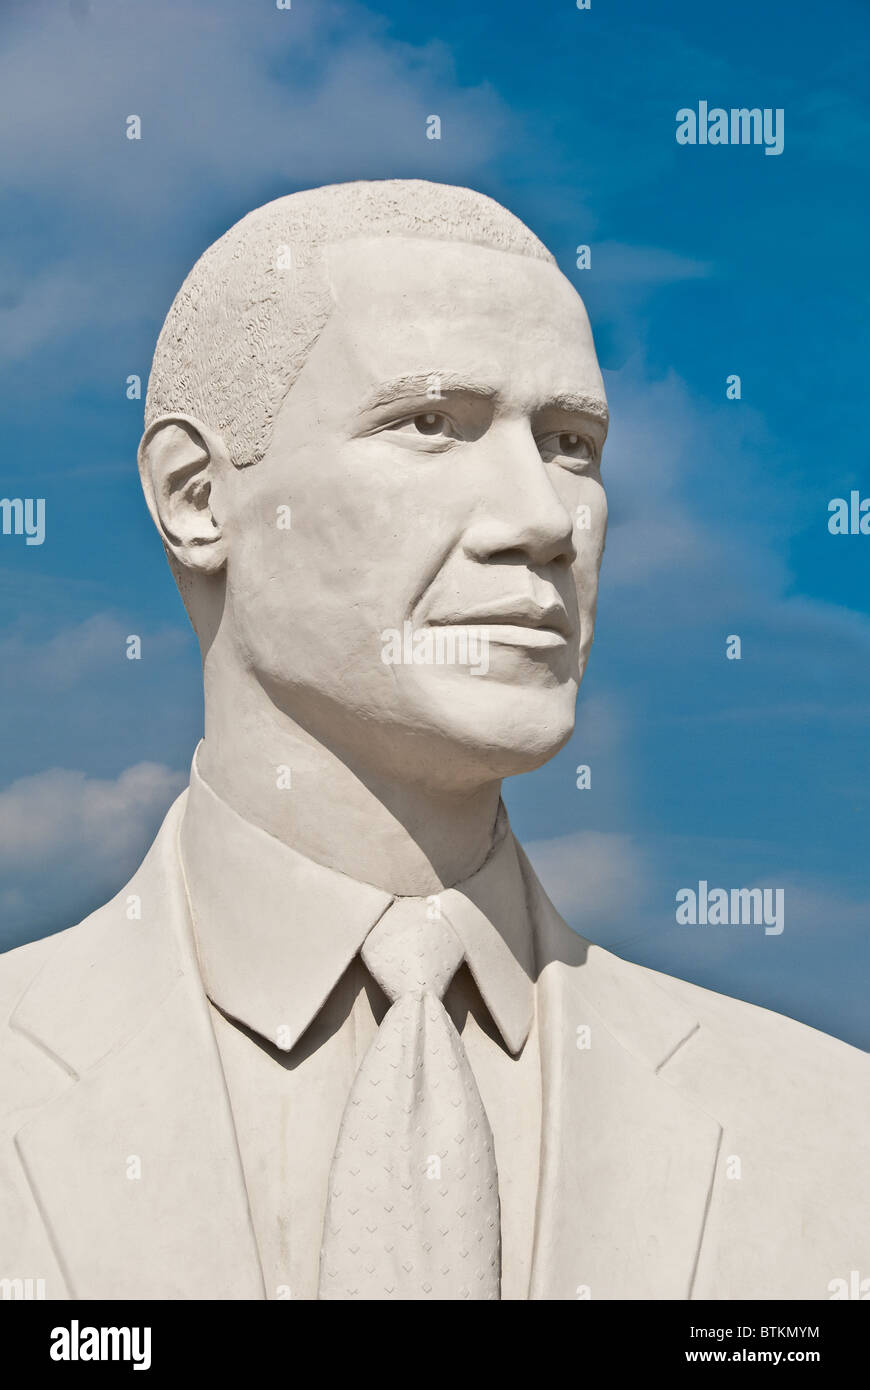 Statue Of Obama Stock Photos  Statue Of Obama Stock ImagesAlamy